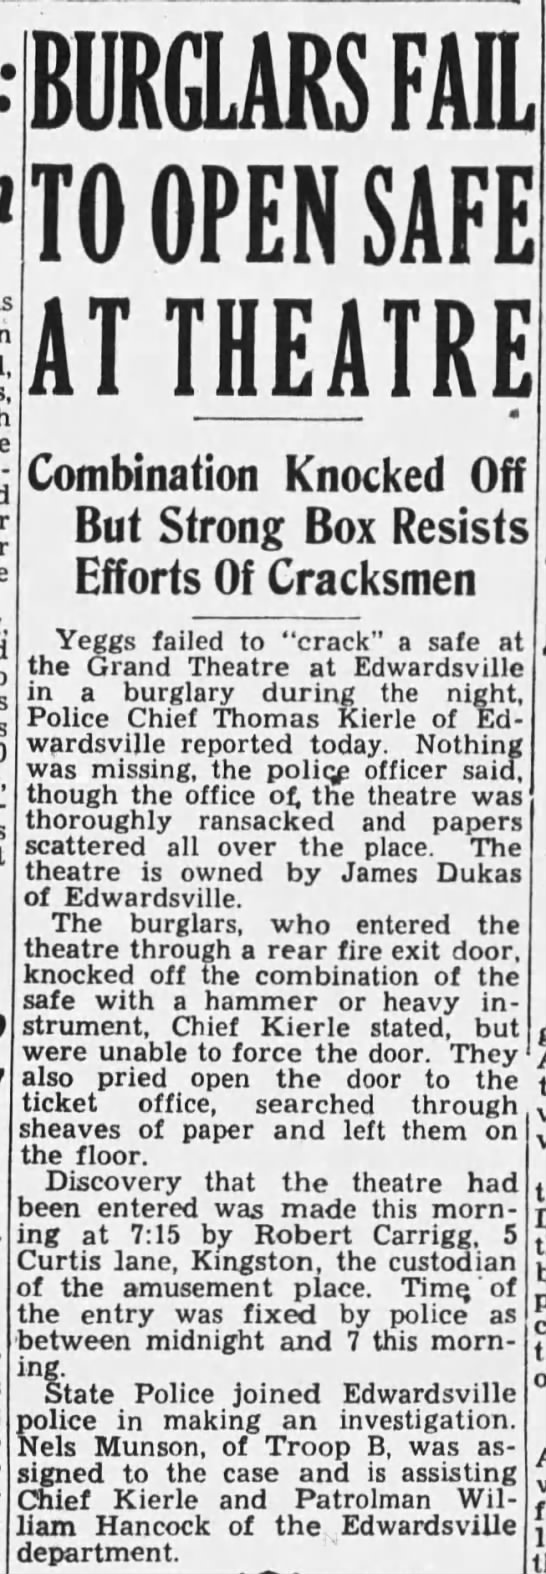 Grand Theatre Burglary 1946 - FAIL JQ Qpj?ty SAFE AT THEATRE Combination...